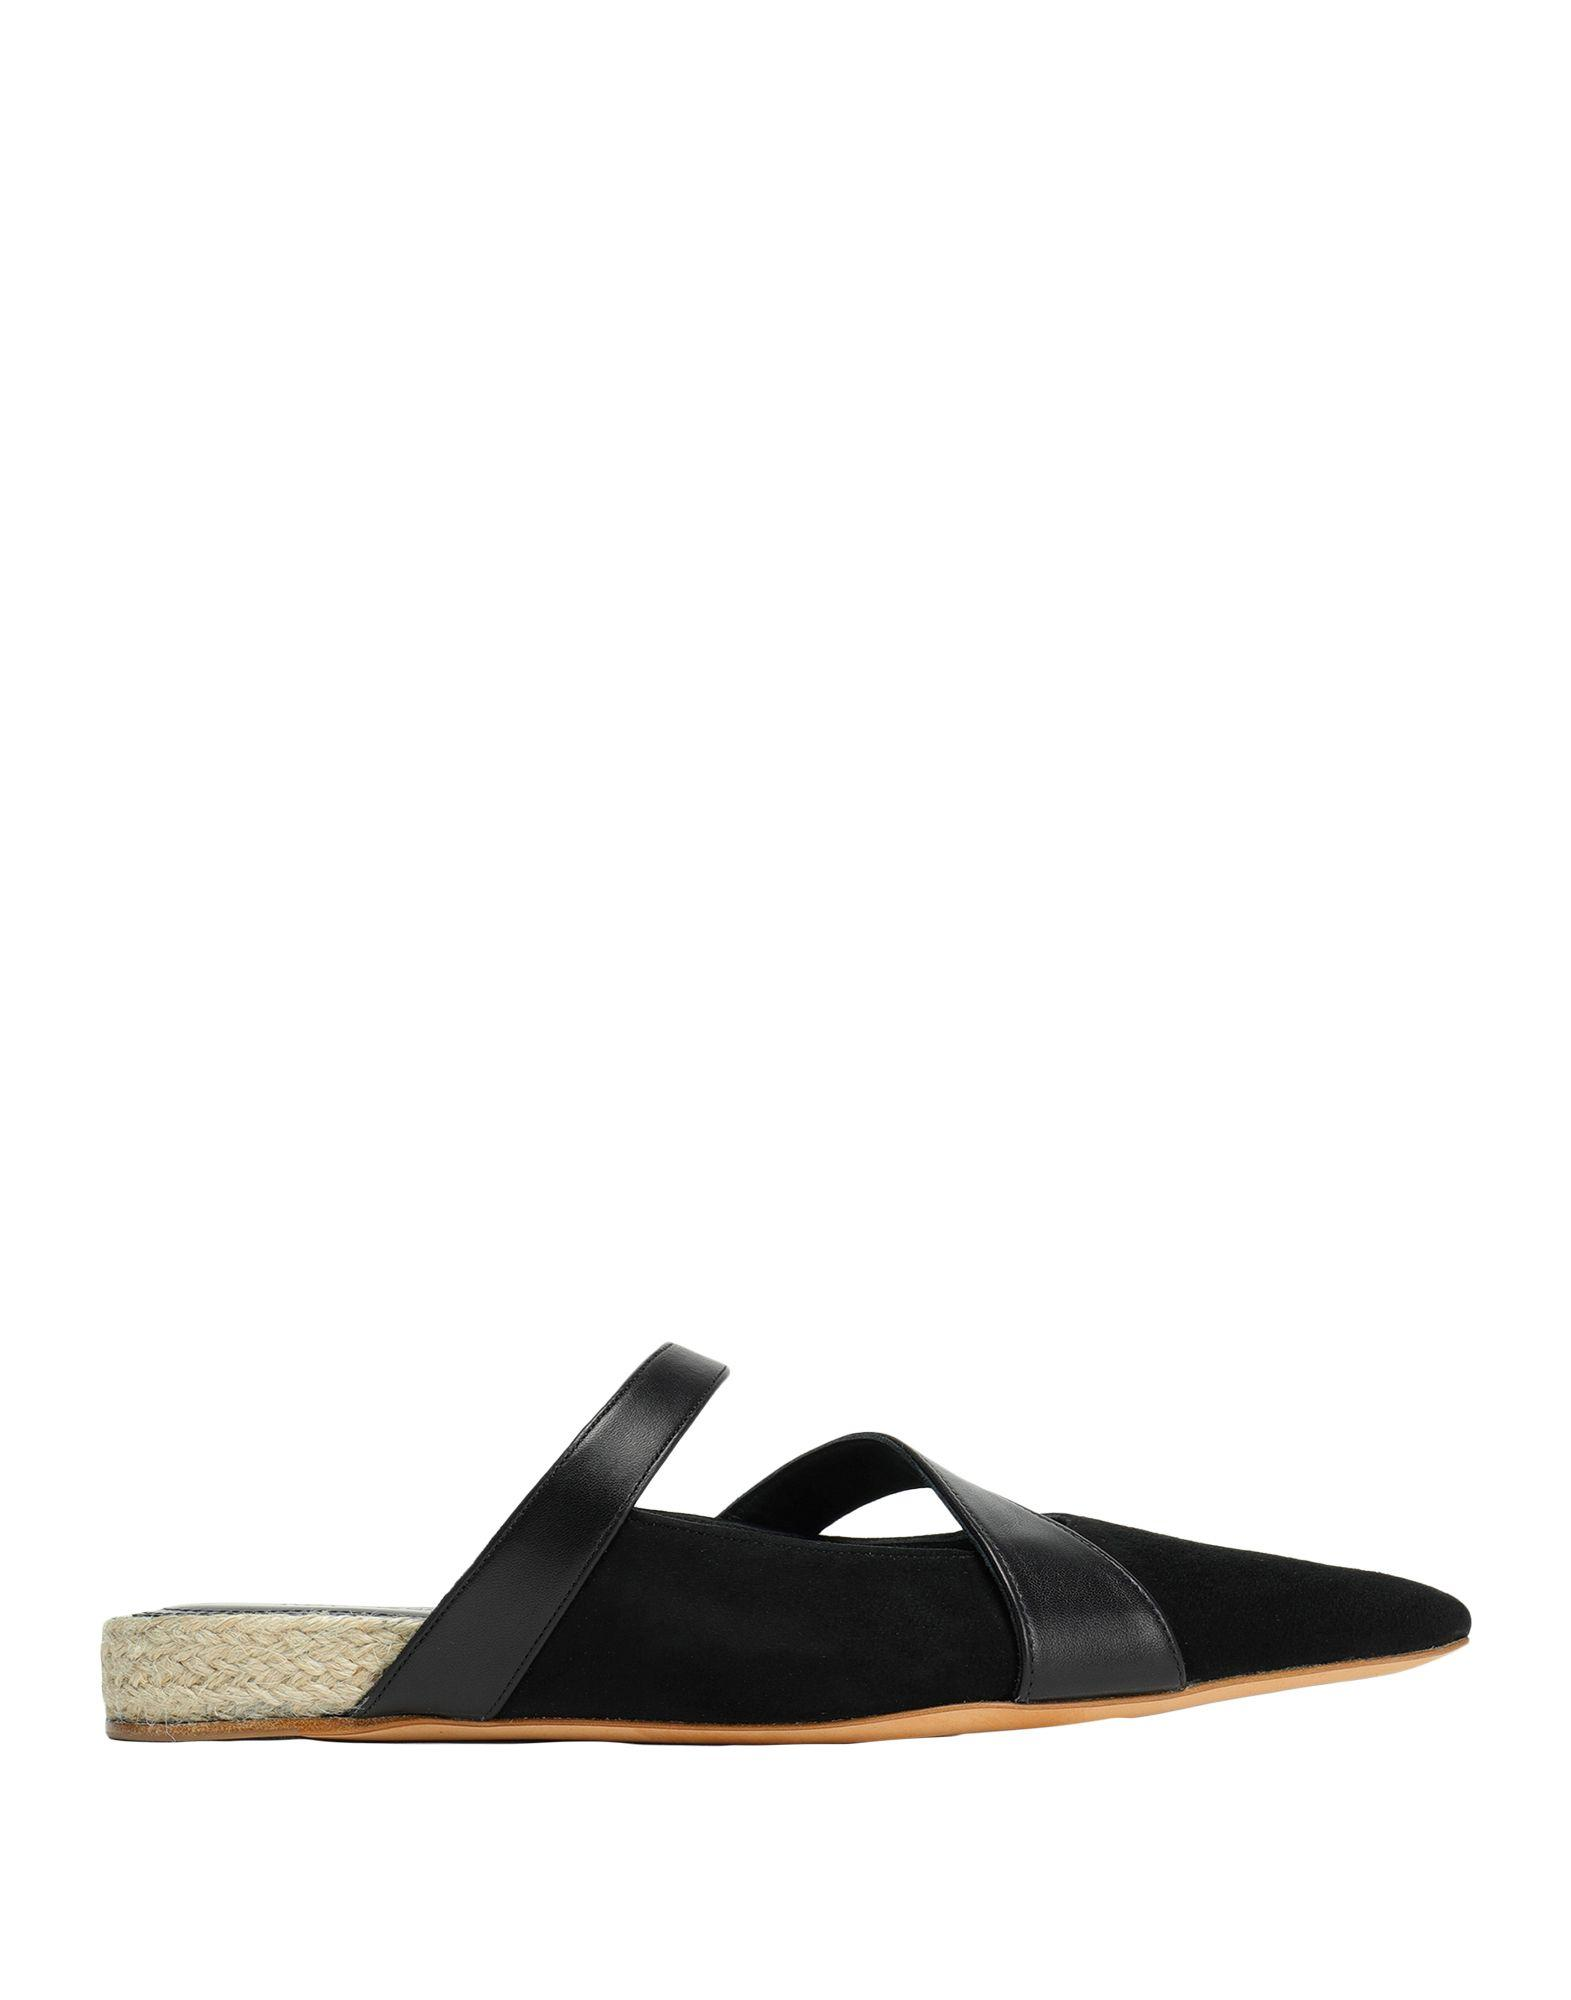 JW Anderson Leather Loafer Mules in Black - Lyst